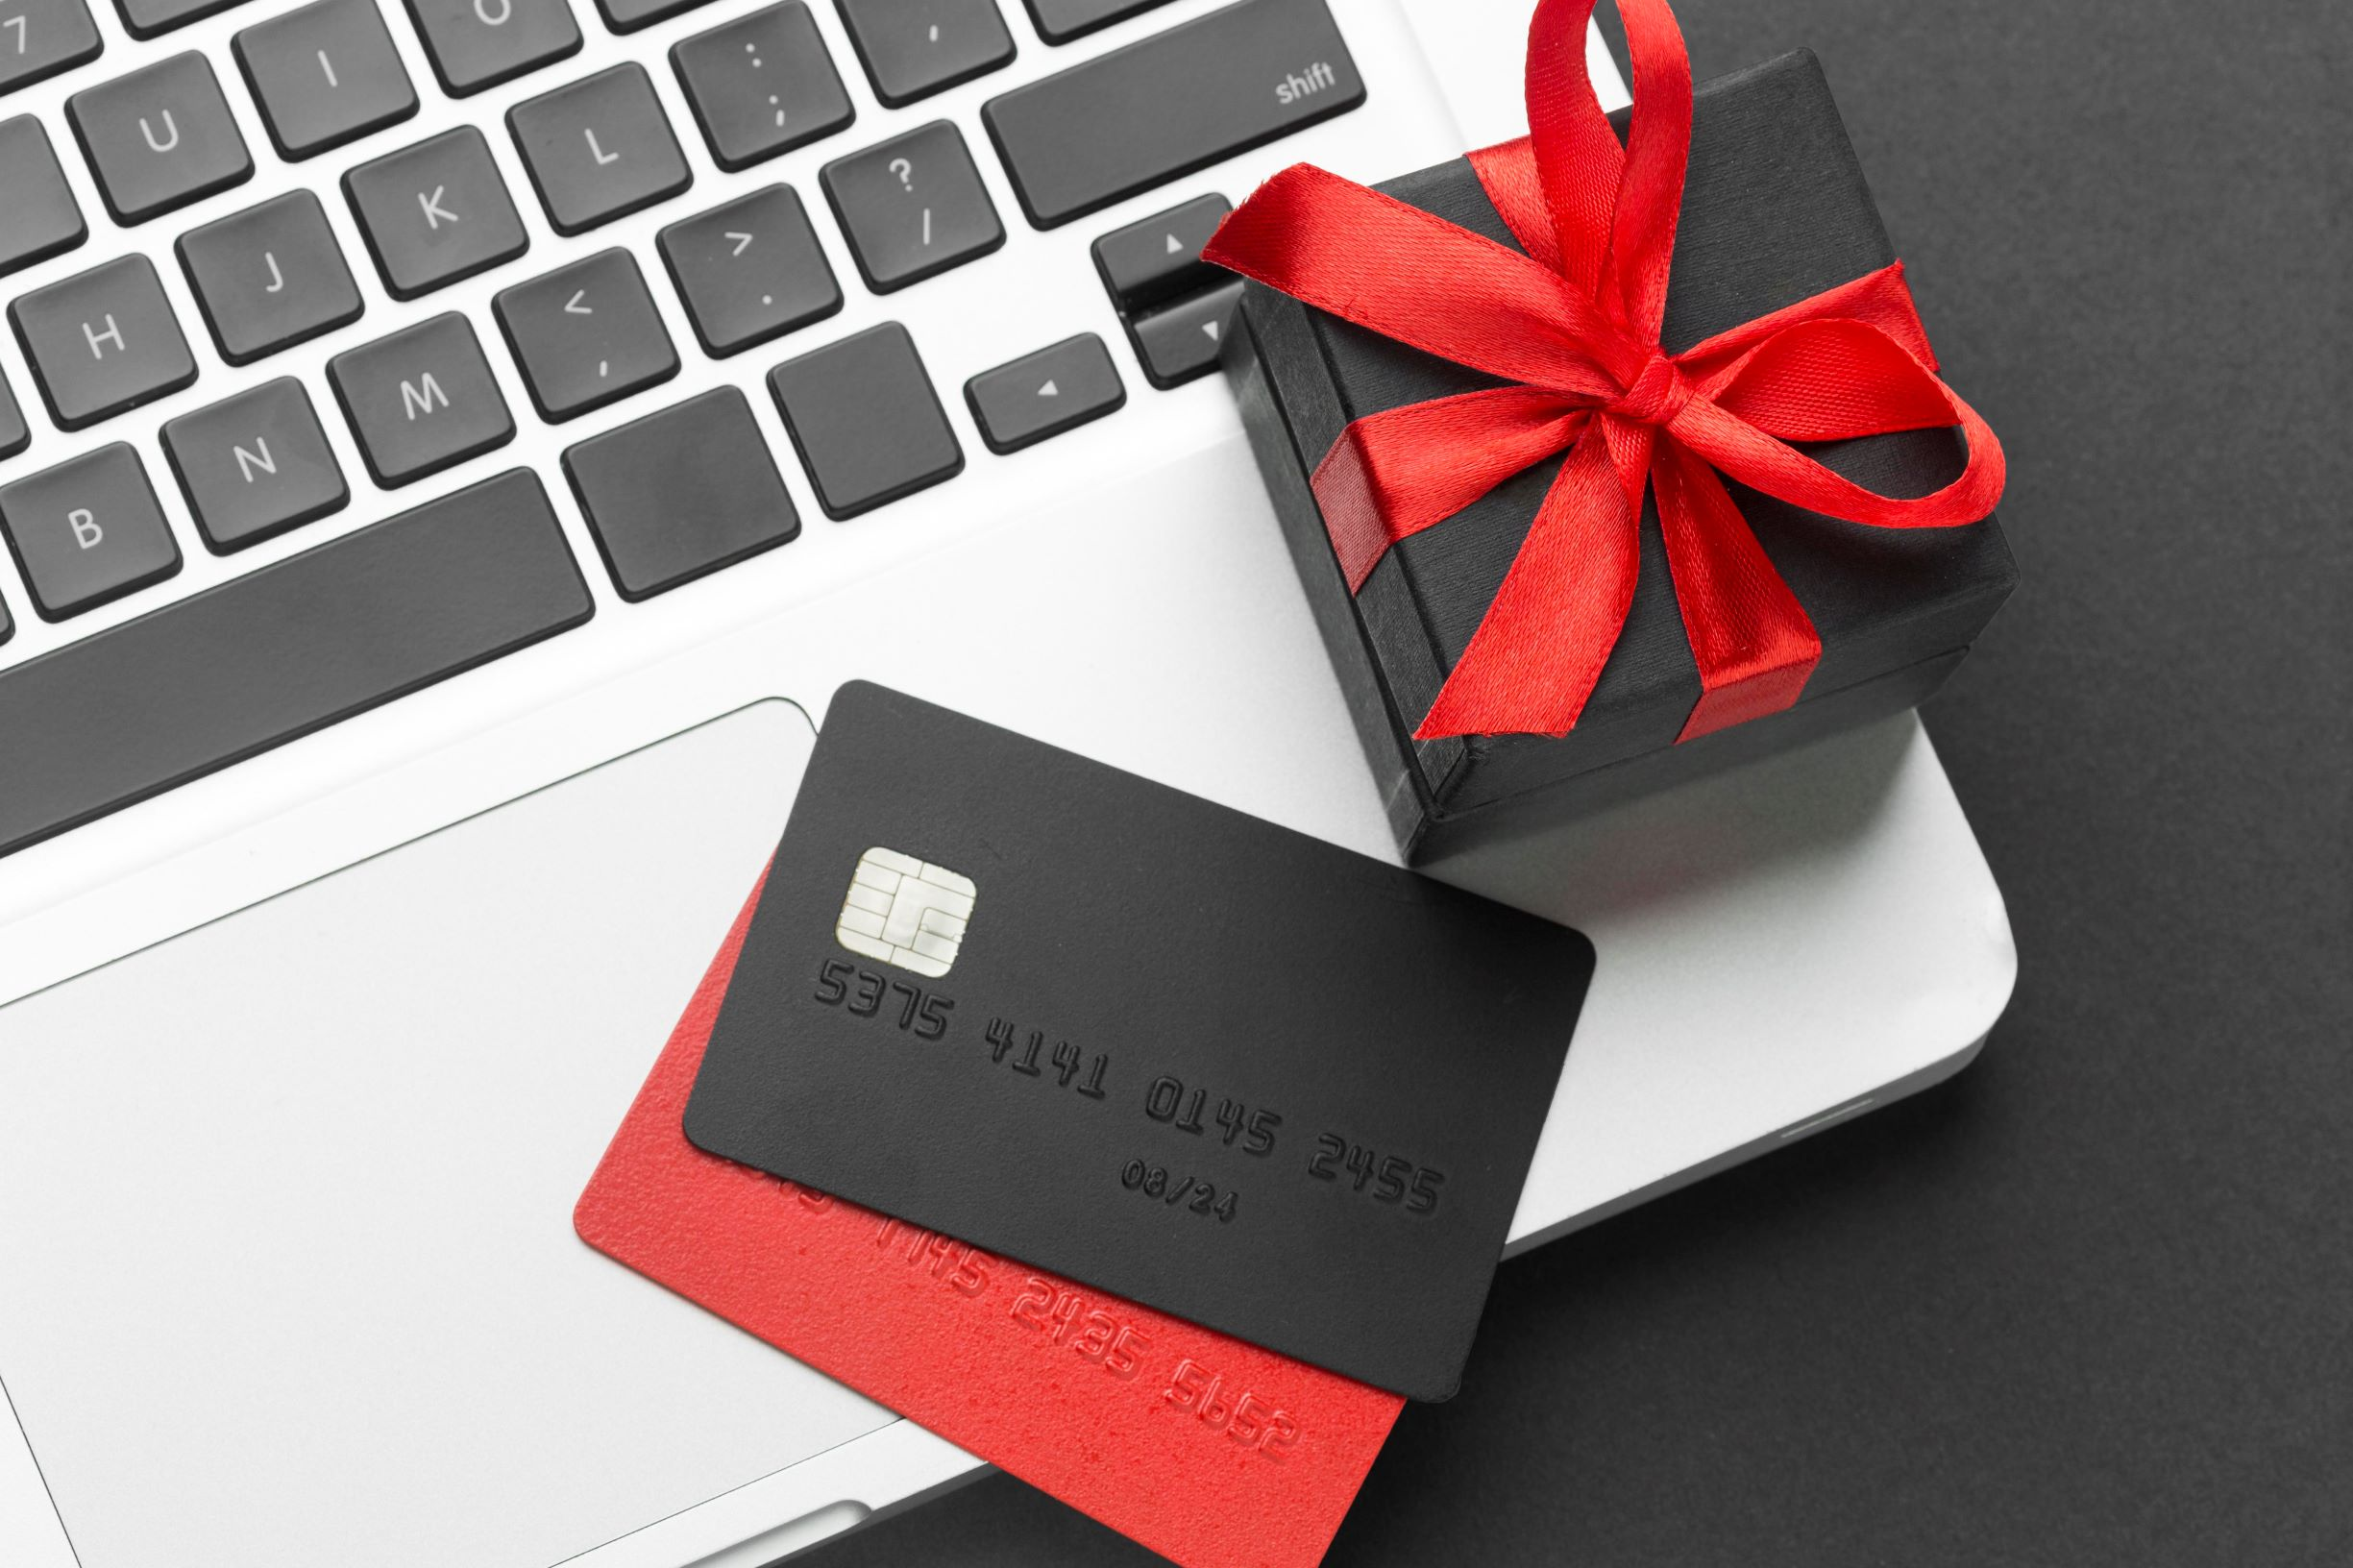 Credit cards sitting on edge of laptop